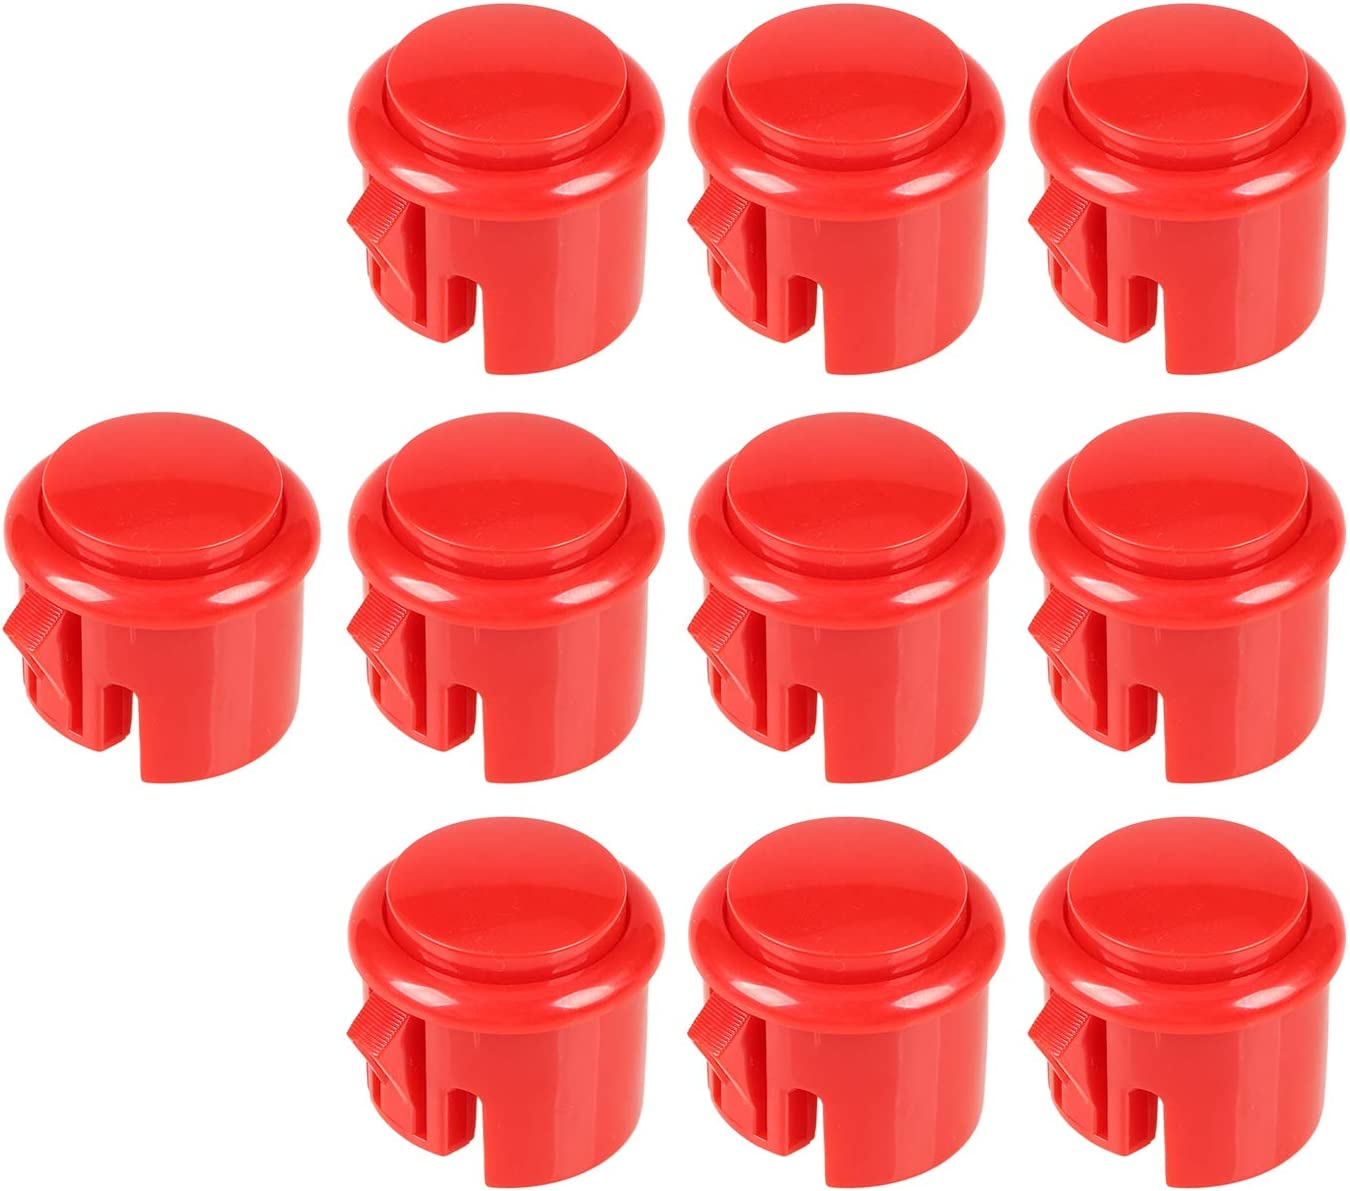 EG STARTS 10x OEM Arcade 30mm Push Buttons Built-in Micro Switch for Arcade Machine Mame Jamma KOF Pacman Games Parts - Red